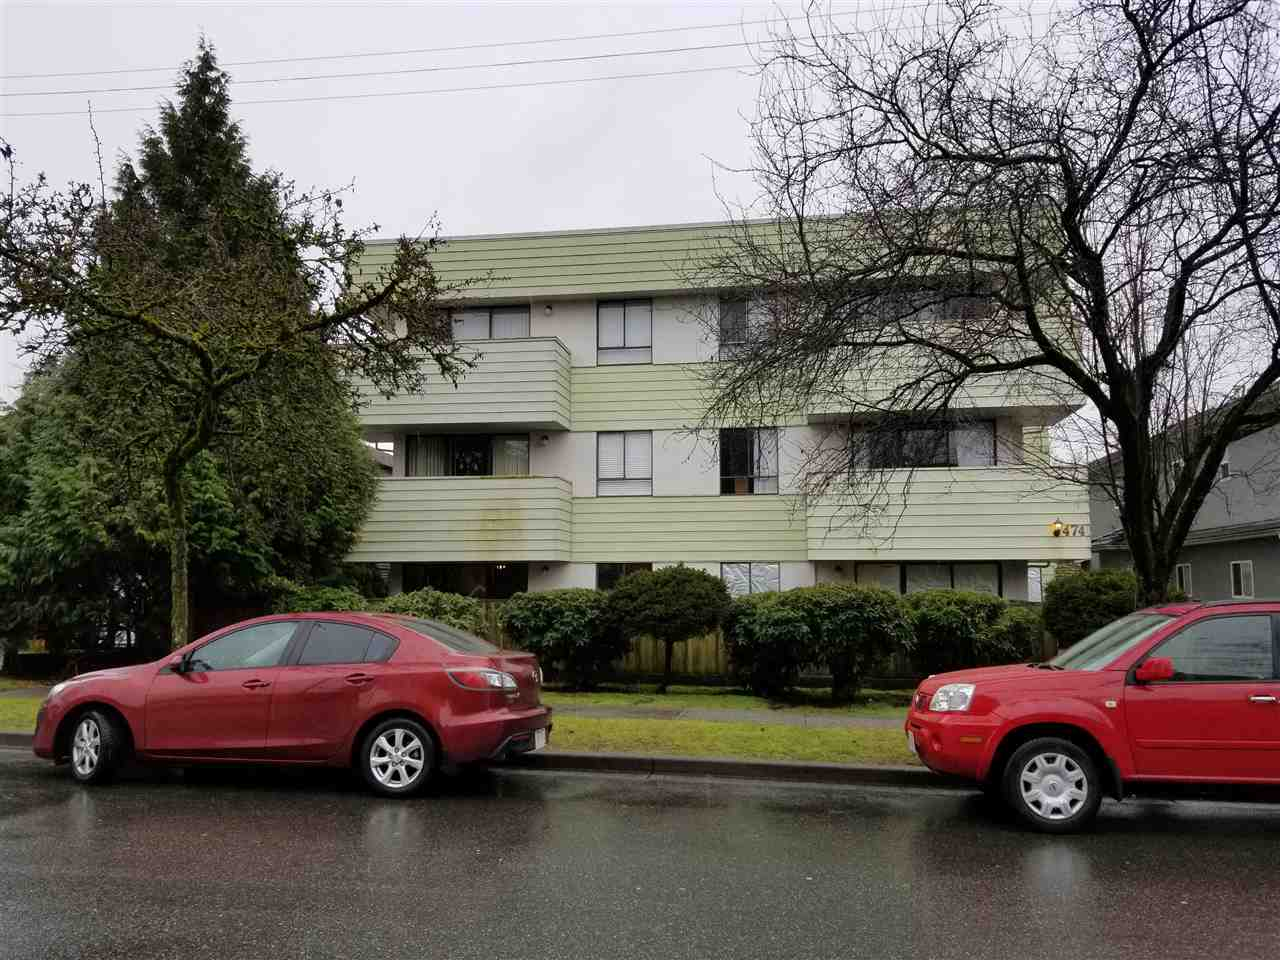 Well maintained 1 bedroom condo located 1 block from Fraser St and 1 block from 41st ave. Walking distance from shops, restaurants, banks, schools and bus stops.  Dont miss.